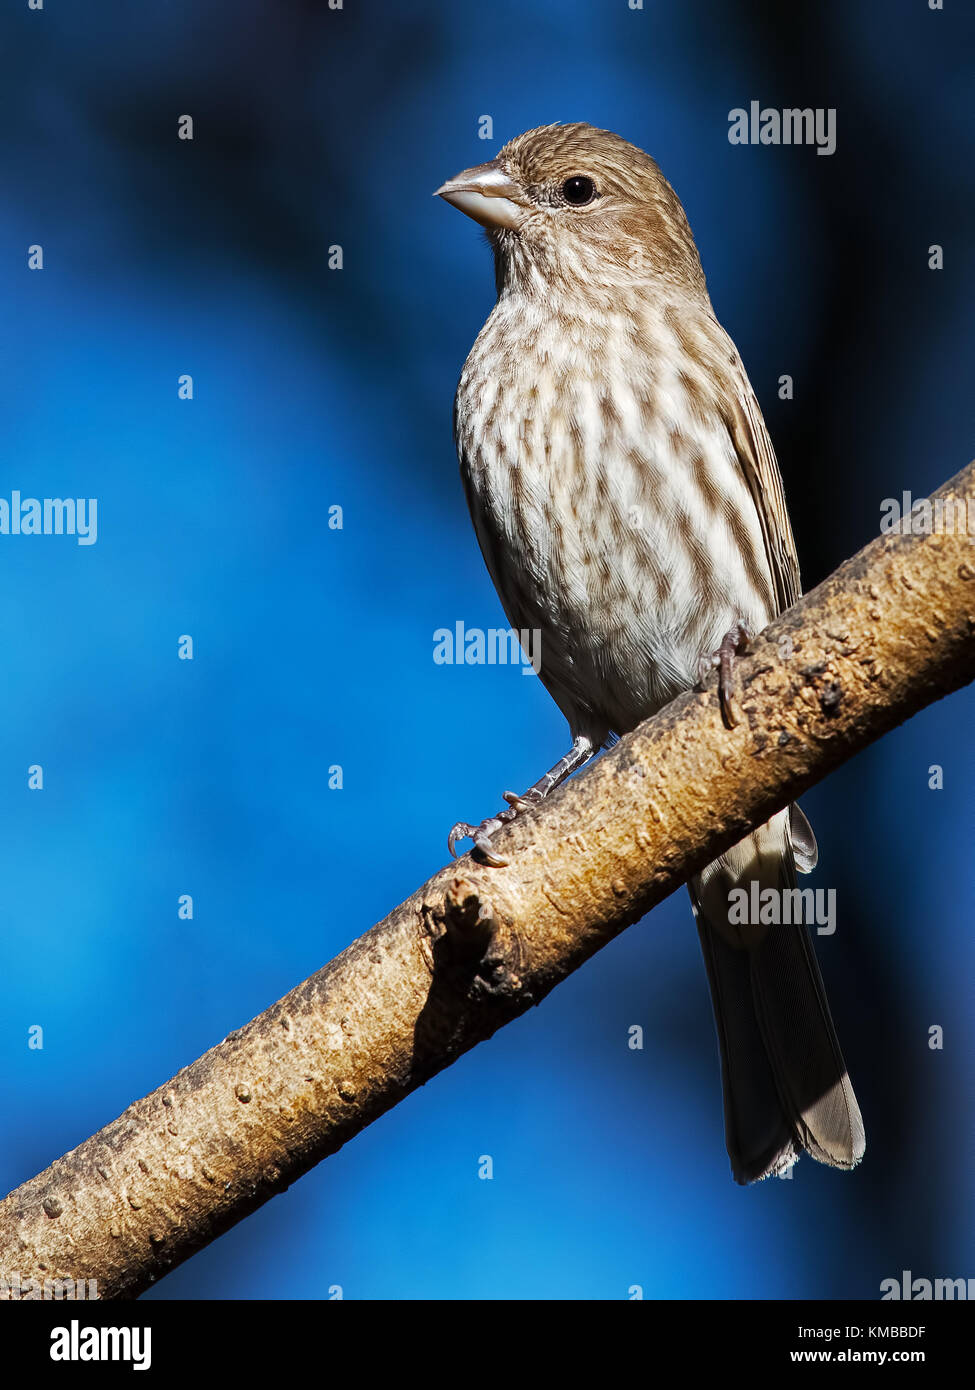 Female House Finch - Stock Image